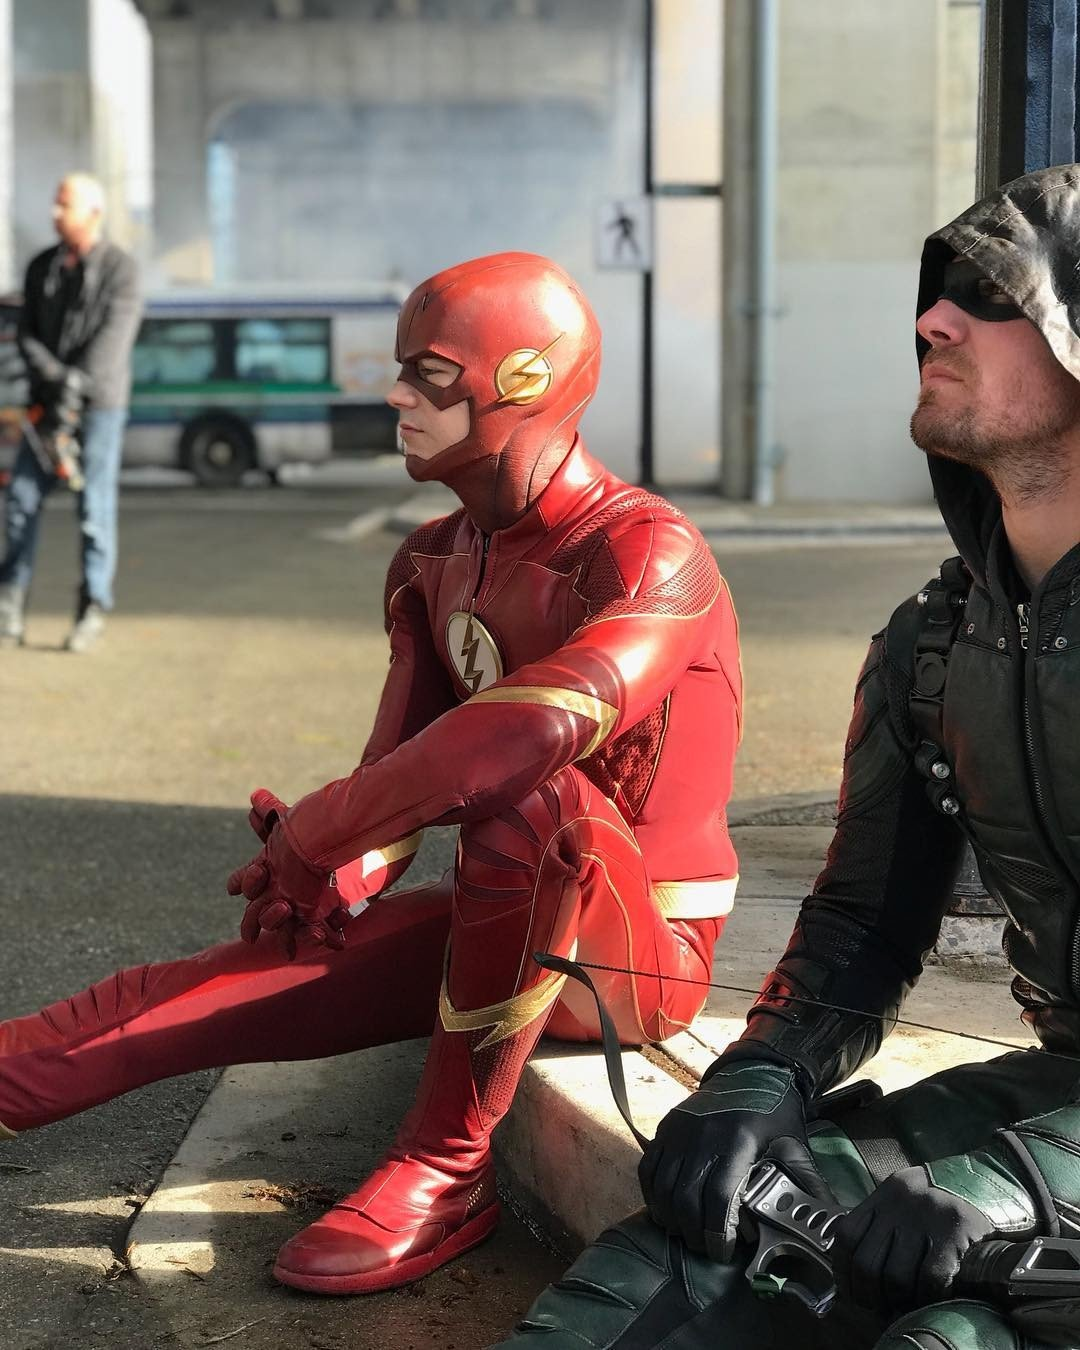 Stephen Amell Shares Behind The Scenes Photo From Arrowverse Crossover